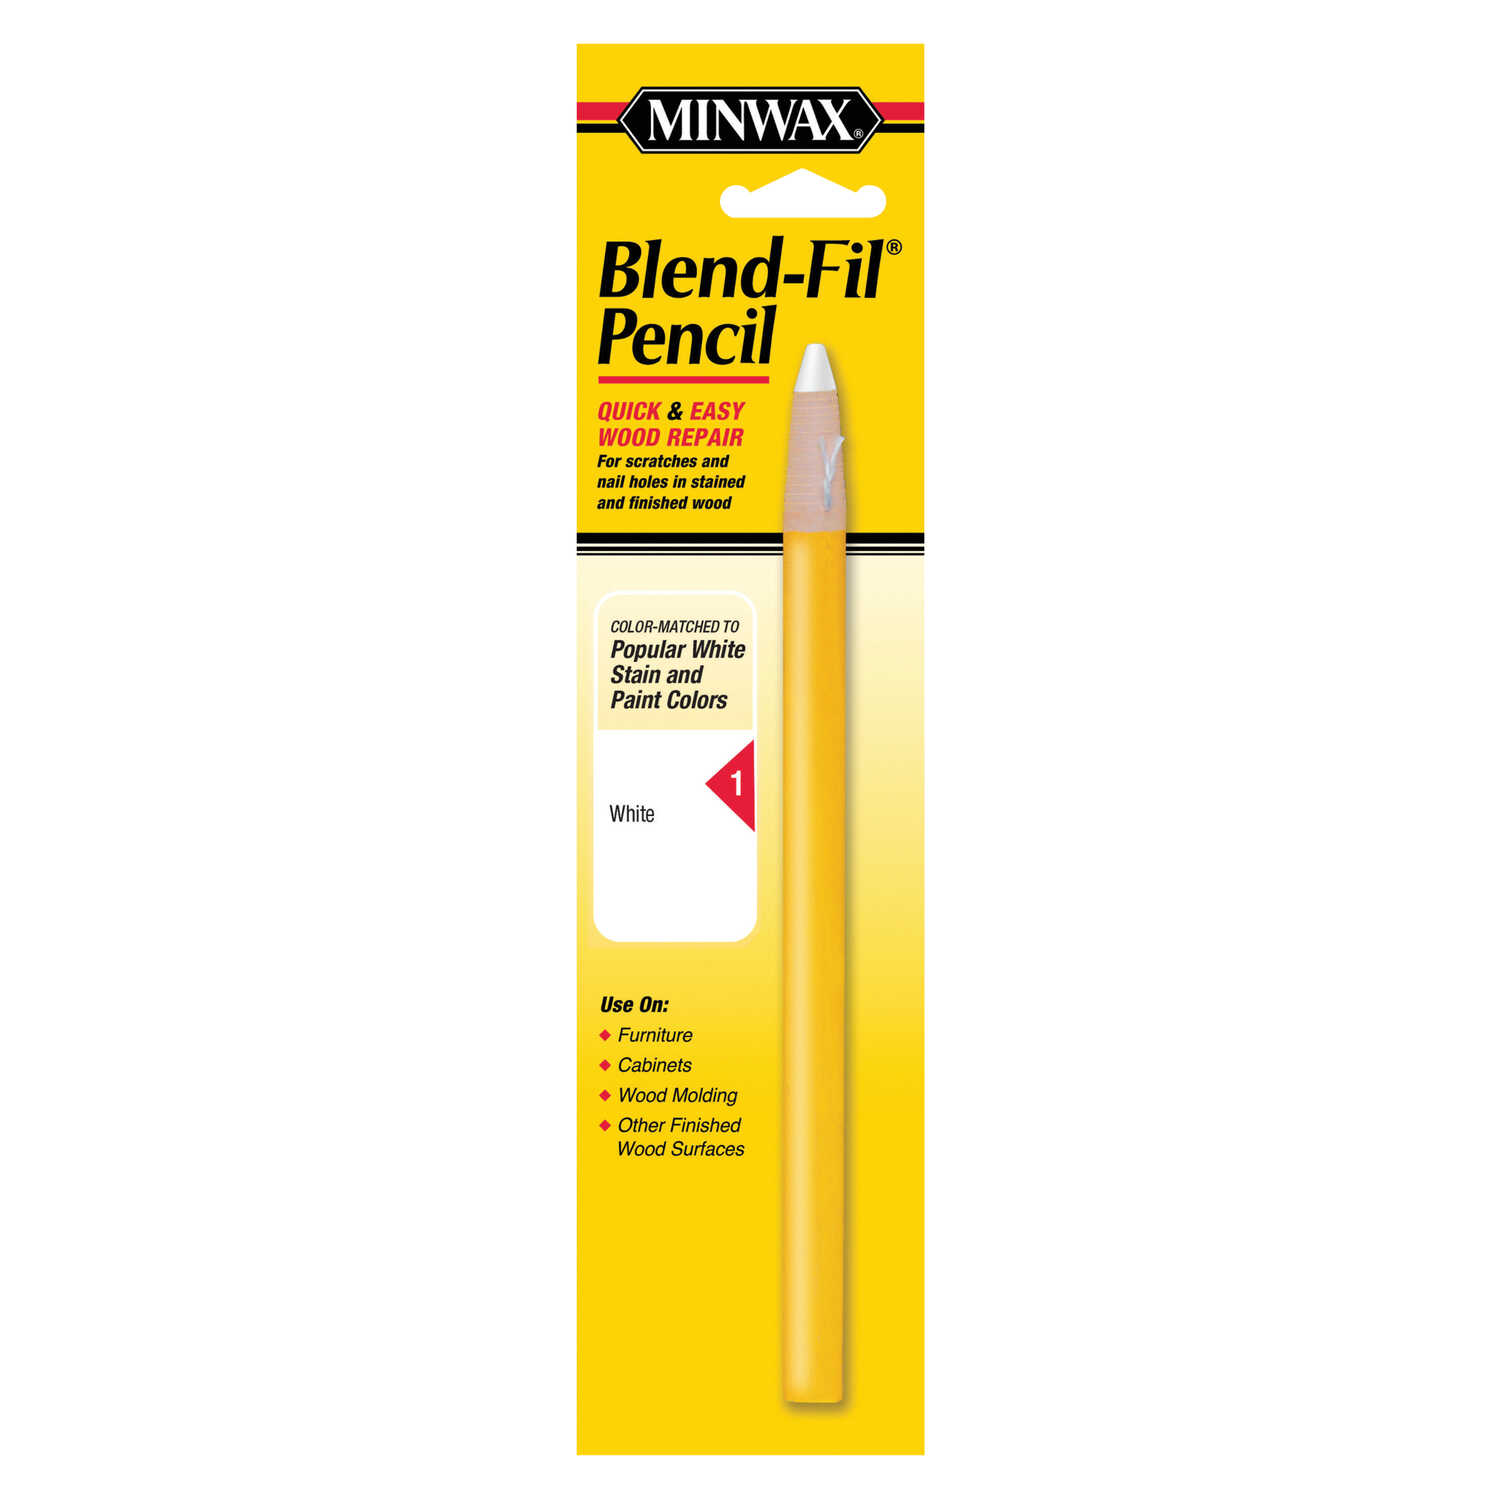 Minwax  Blend-Fil No. 1  White  Wood Pencil  1 pk